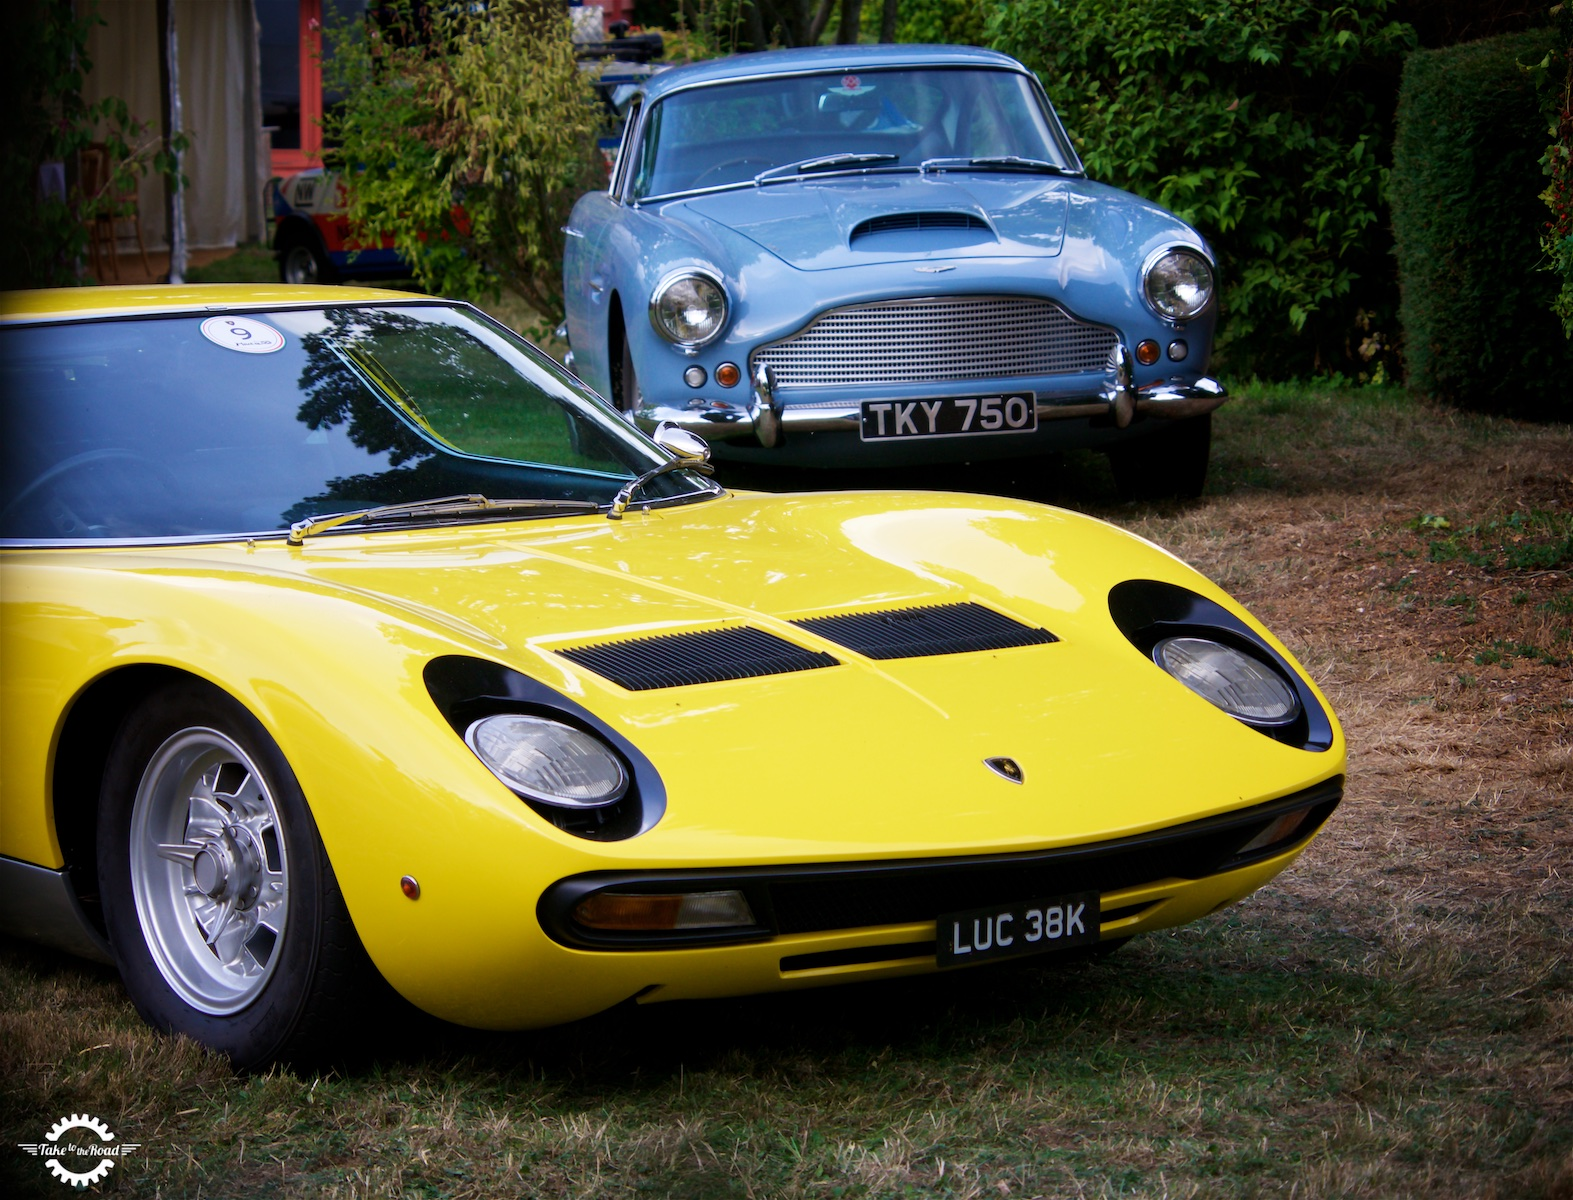 Can I display black and silver number plates on my classic car?